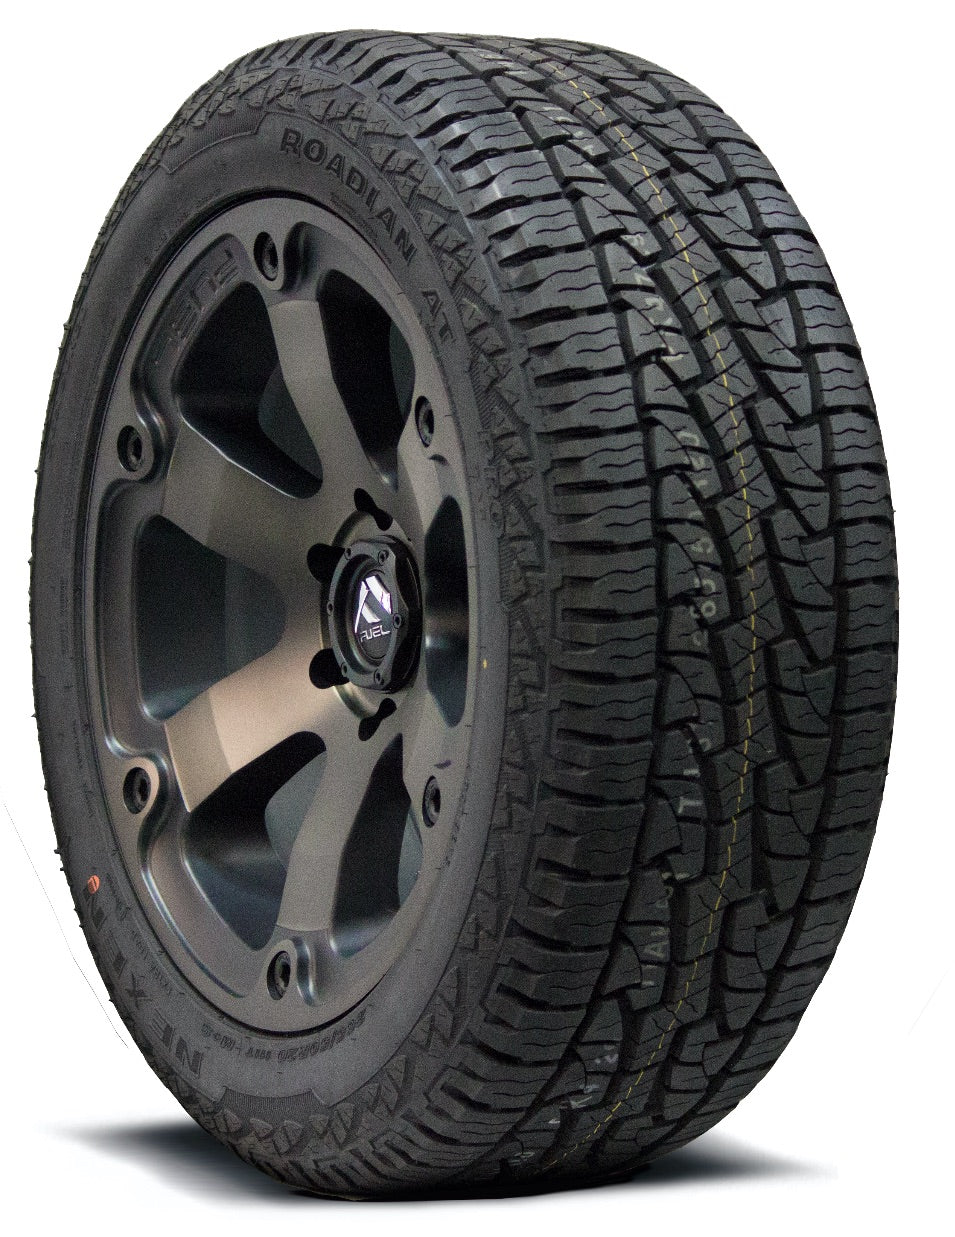 285/45R22 NEXEN ROADIAN AT PRO RA8 | BLACK LTR 114H